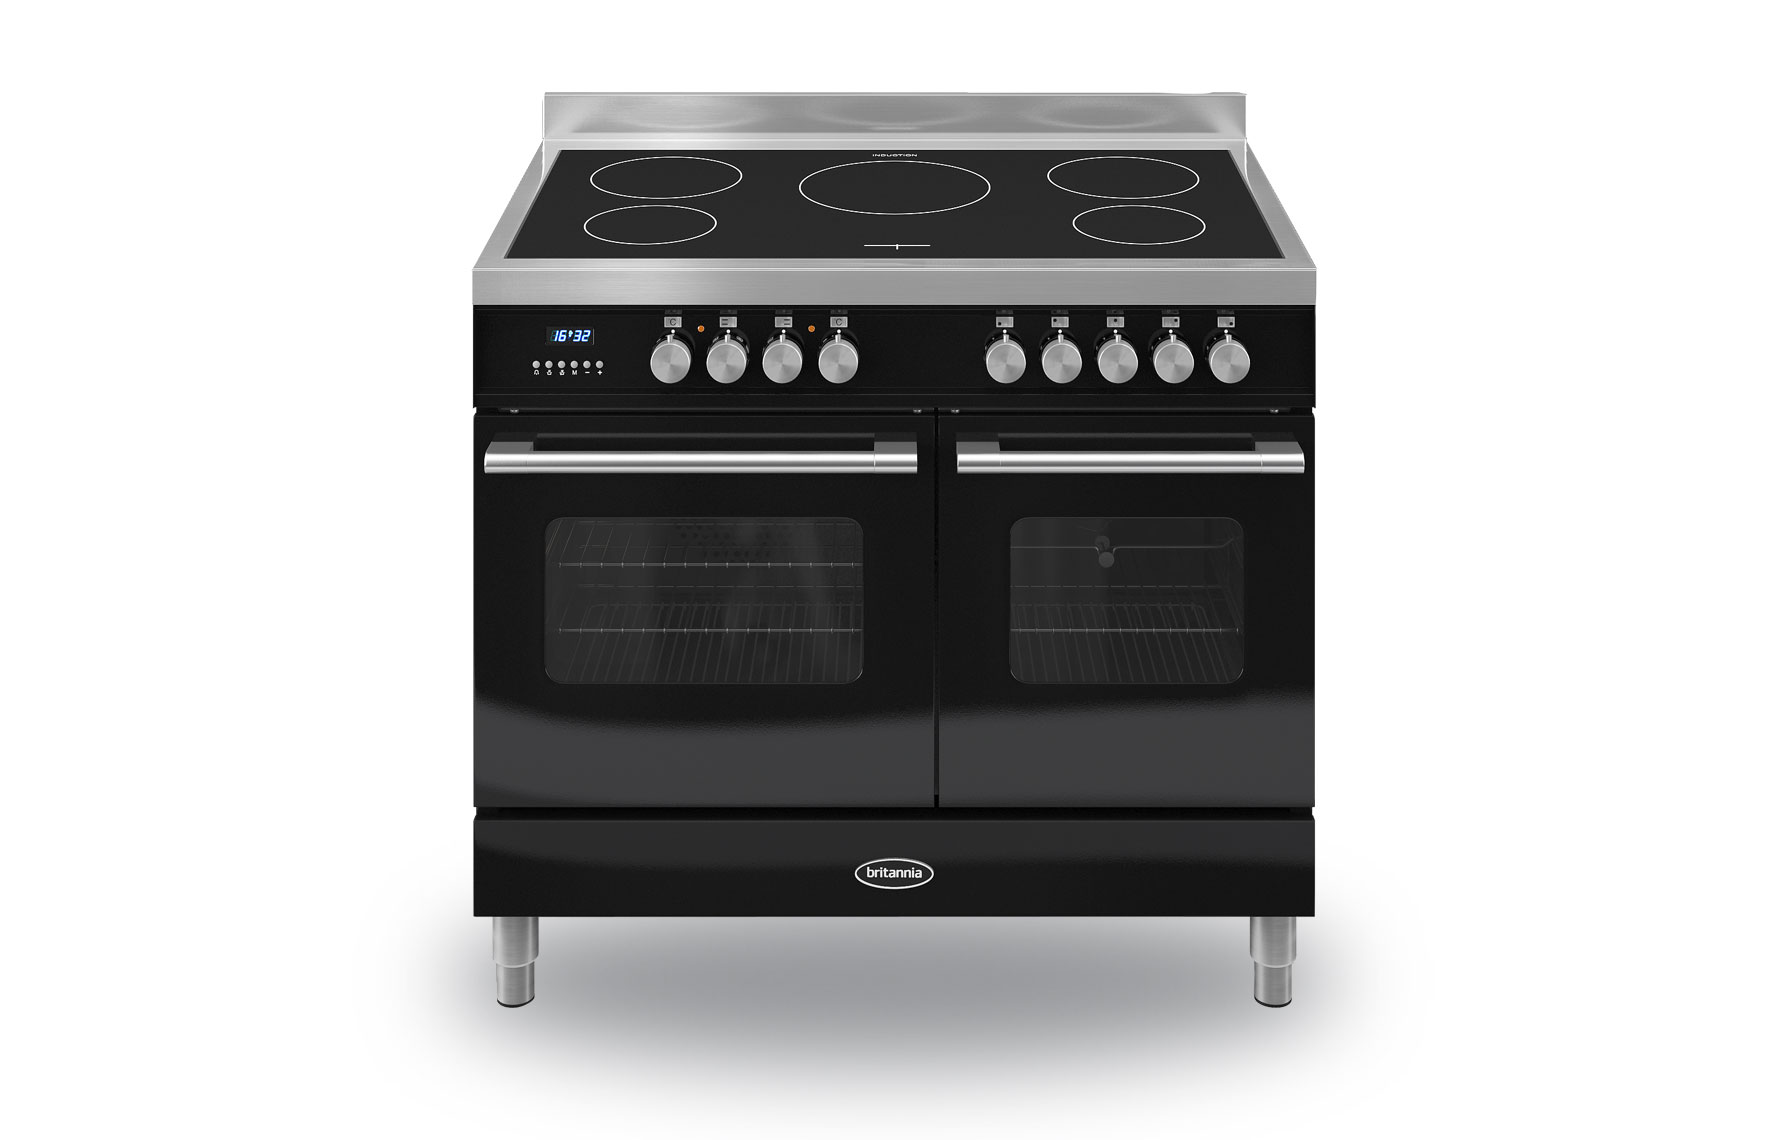 77881695 9d0e 445b bdd6 9c4c481522ed britannia delphi 100 twin induction range cookers rangecookers co uk britannia range cooker wiring diagram at virtualis.co